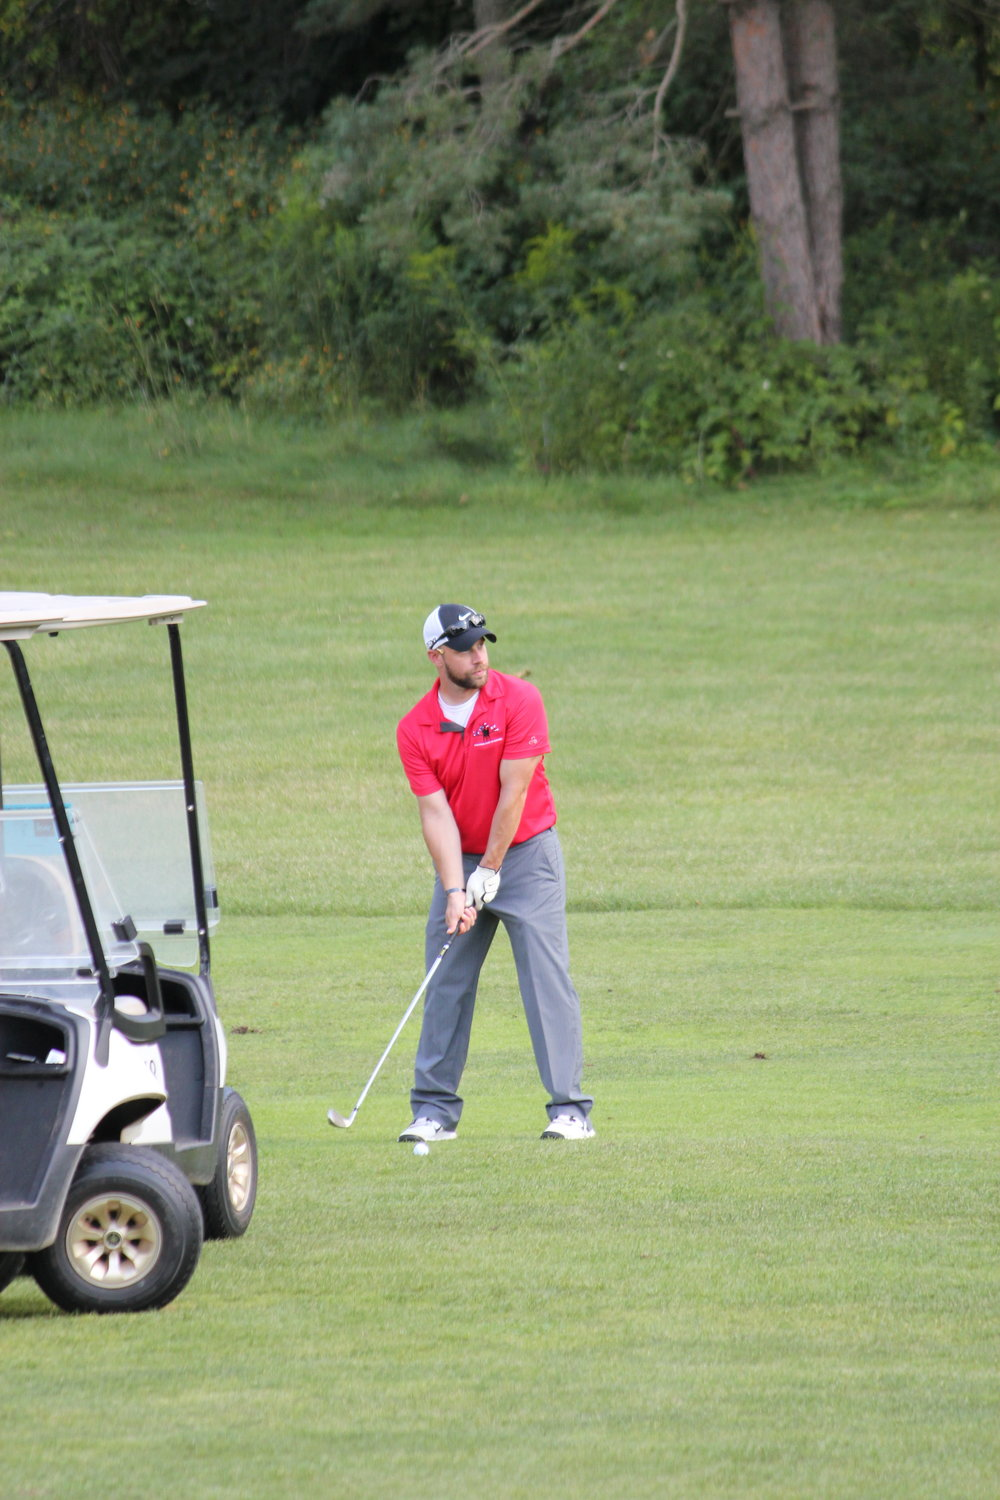 IMG_2249 Jesse golfing FFO Golf Outing 2015 copy.JPG